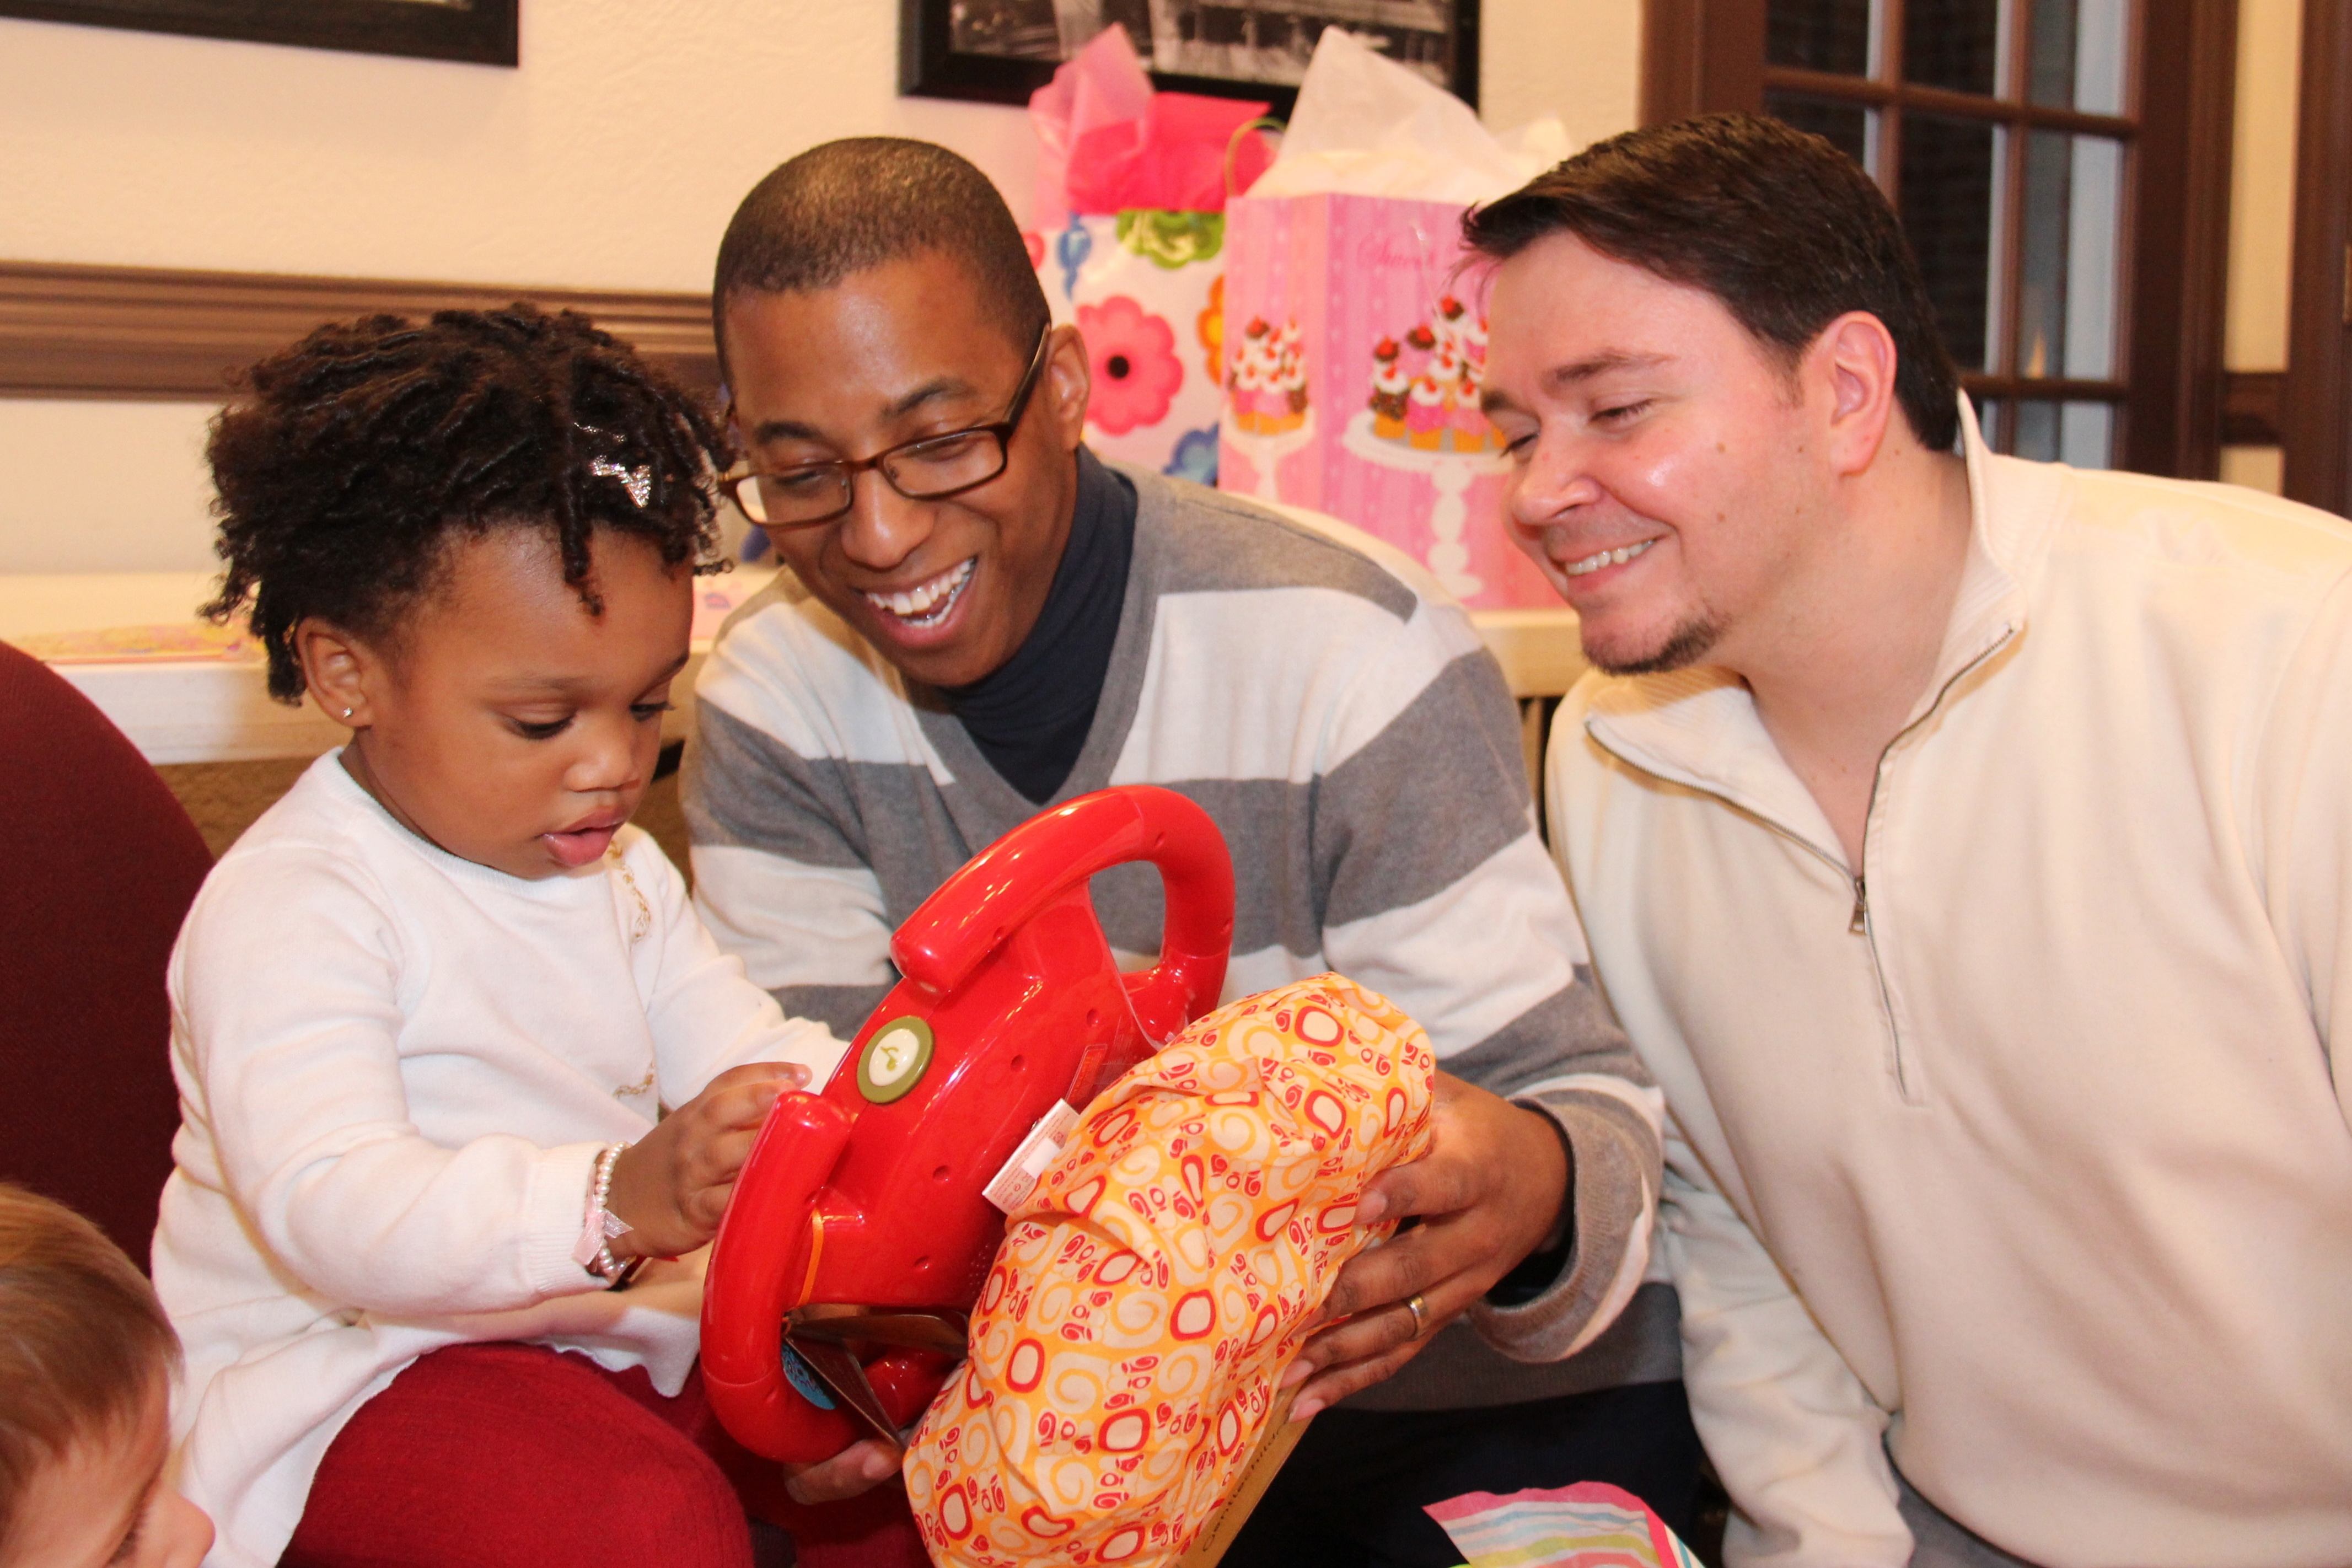 Maryland jurisdictions becoming more open to same-sex adoptions